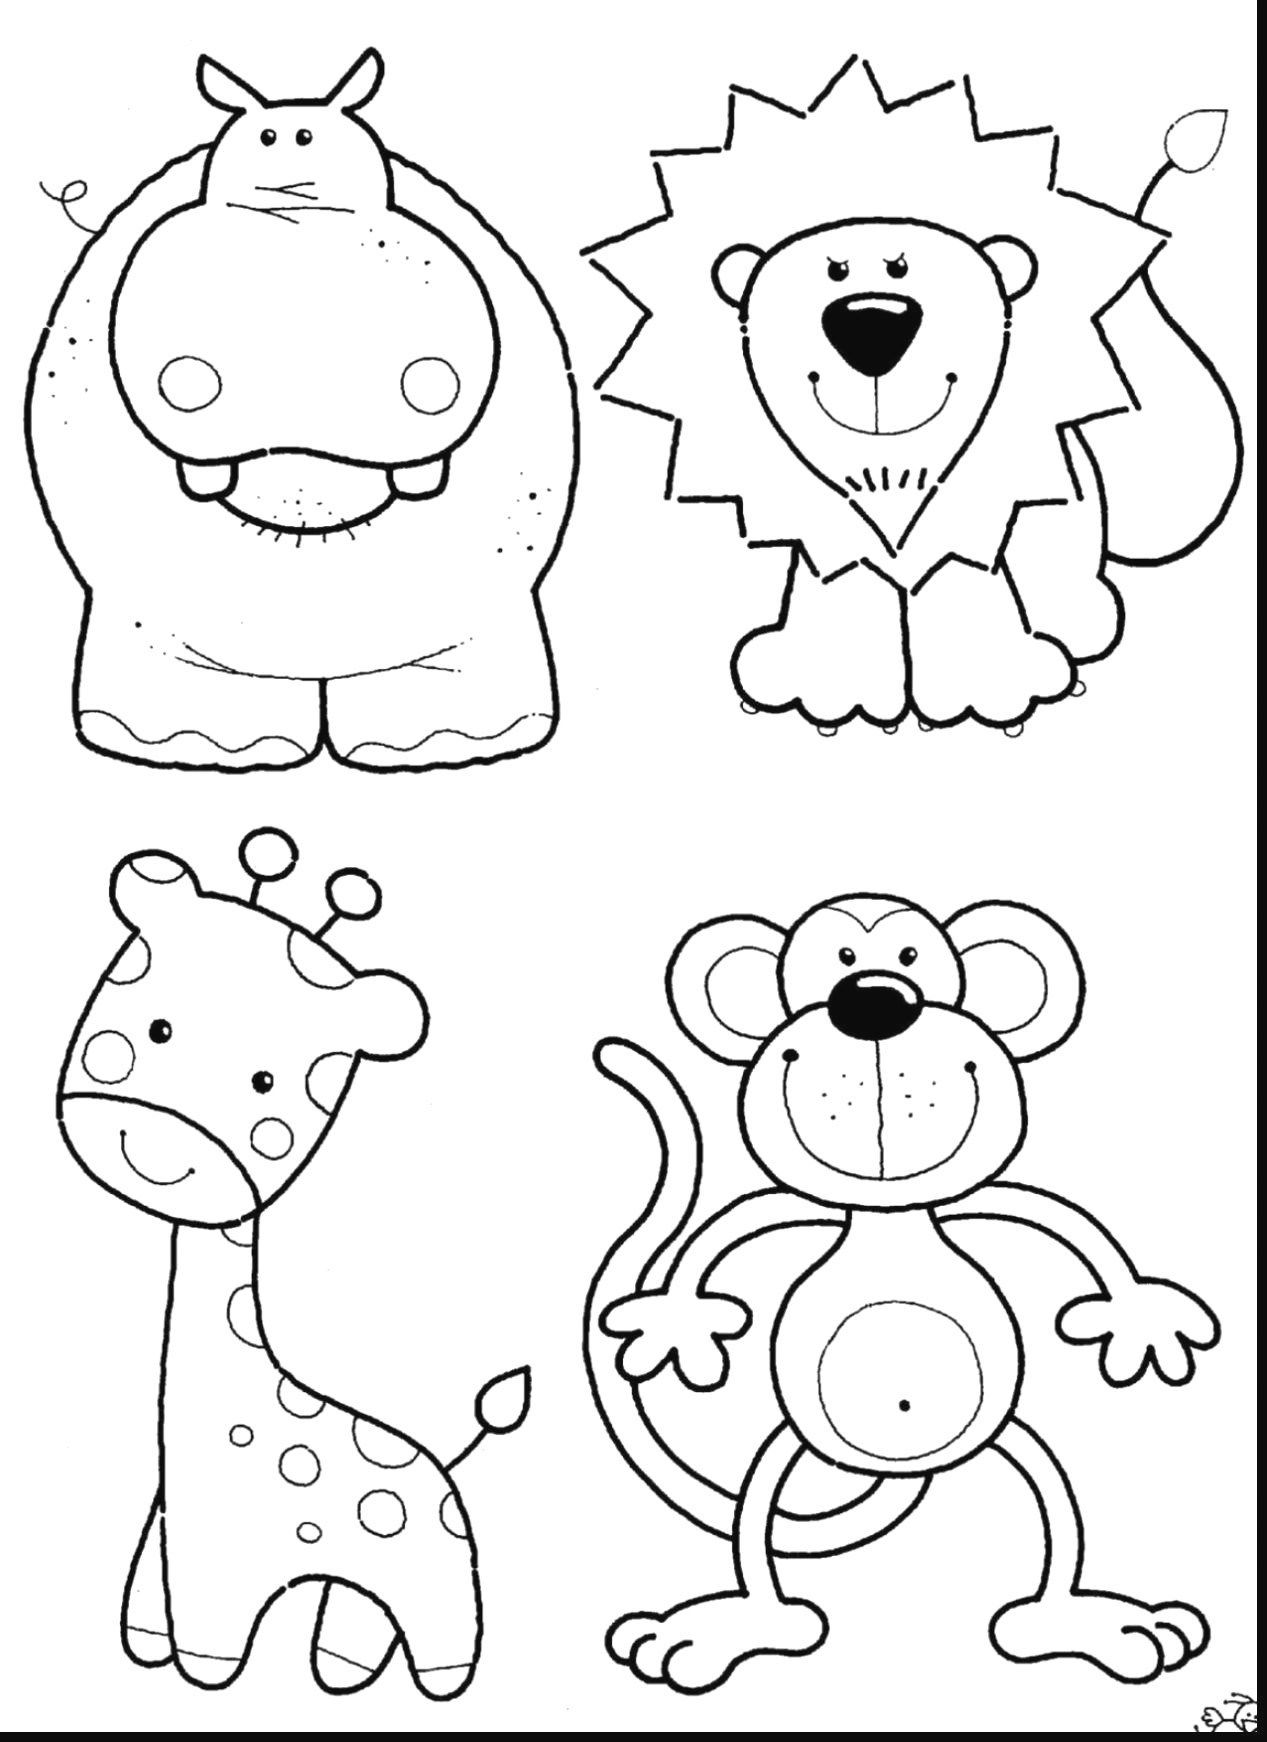 Zoo Animals Coloring Pages Zoo Animal Coloring Pages To Print Color Pages Animals Coloring Entitlementtrap Com In 2020 Zoo Coloring Pages Zoo Animal Coloring Pages Animal Coloring Books